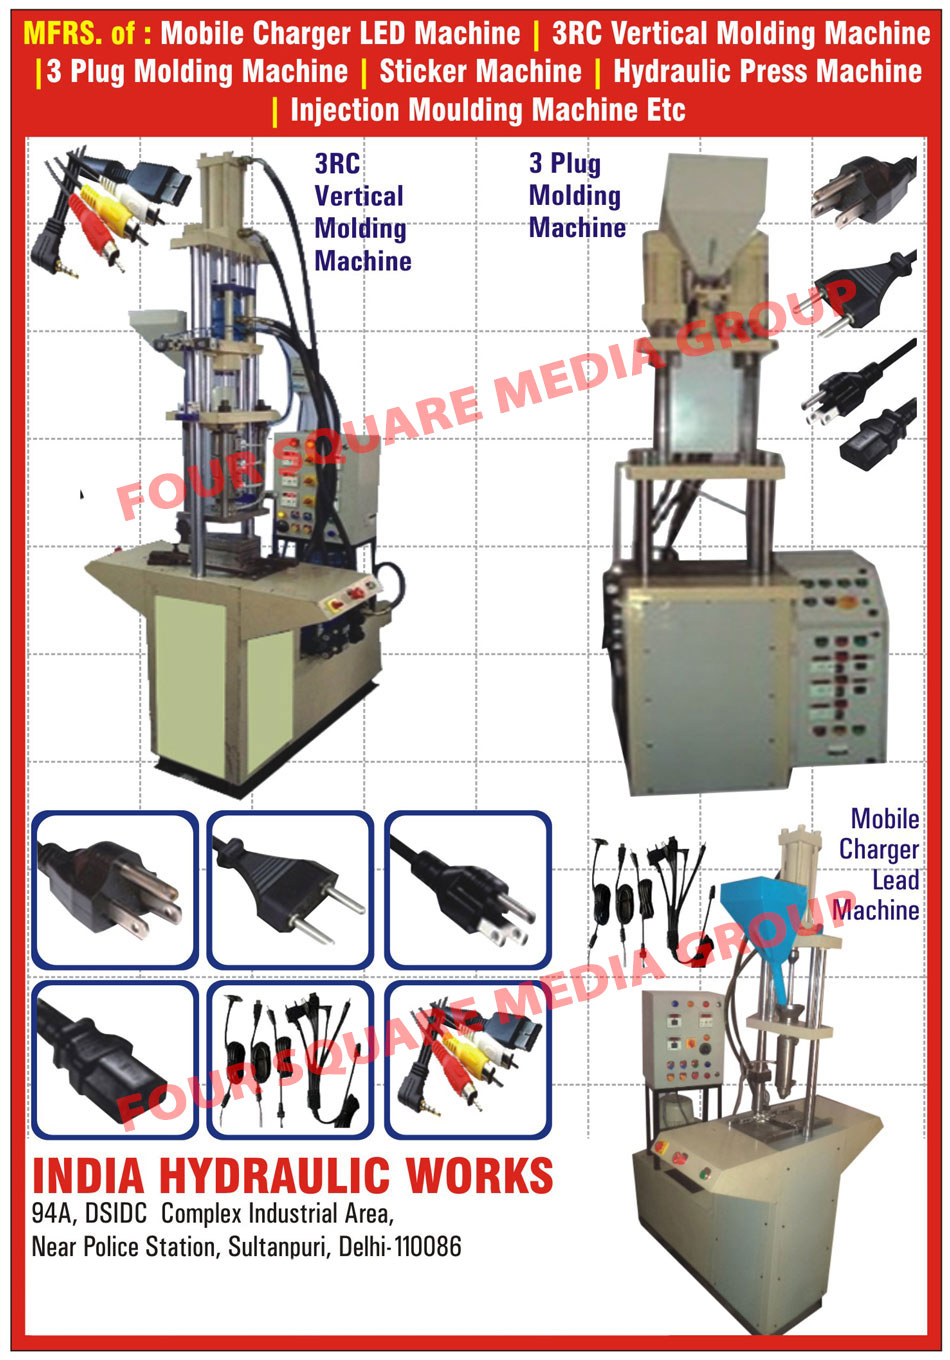 Rubber Hydraulic Press, Mobile Charger Single Barrel Machines, Double Colour PVC Sticker Machines, Injection Moulding Machines, Cord Moulding Machines, Plug Moulding Machines, Mobile Charger, 3 Plug Molding Machines, Mobile Charger Lead Machine, 3RC Vertical Molding Machine